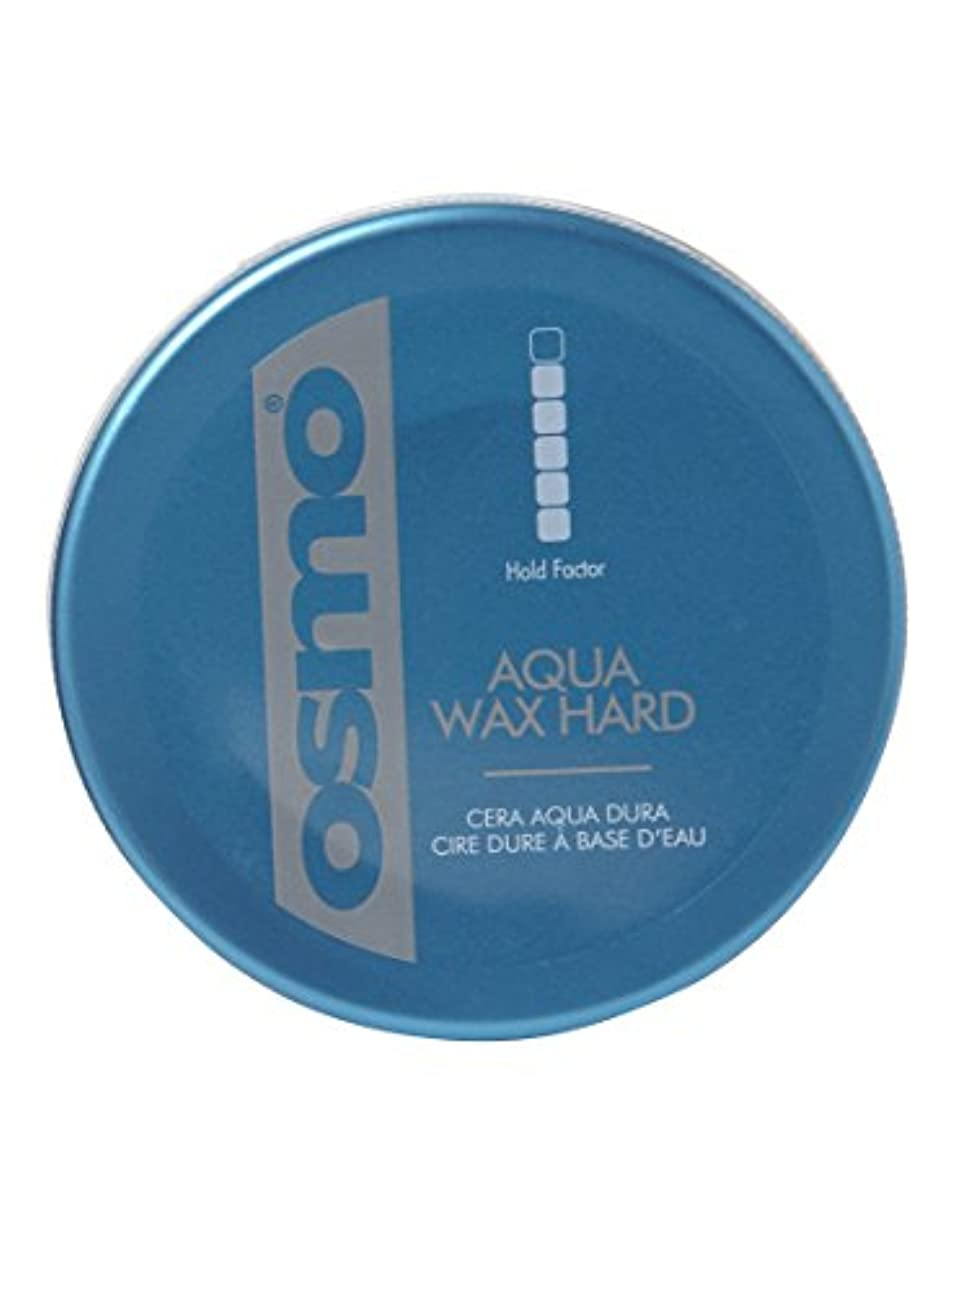 信じられないおいしいであることOsmo Aqua Wax Hard - For An Incredible Shine And Strong Hold - 100ml